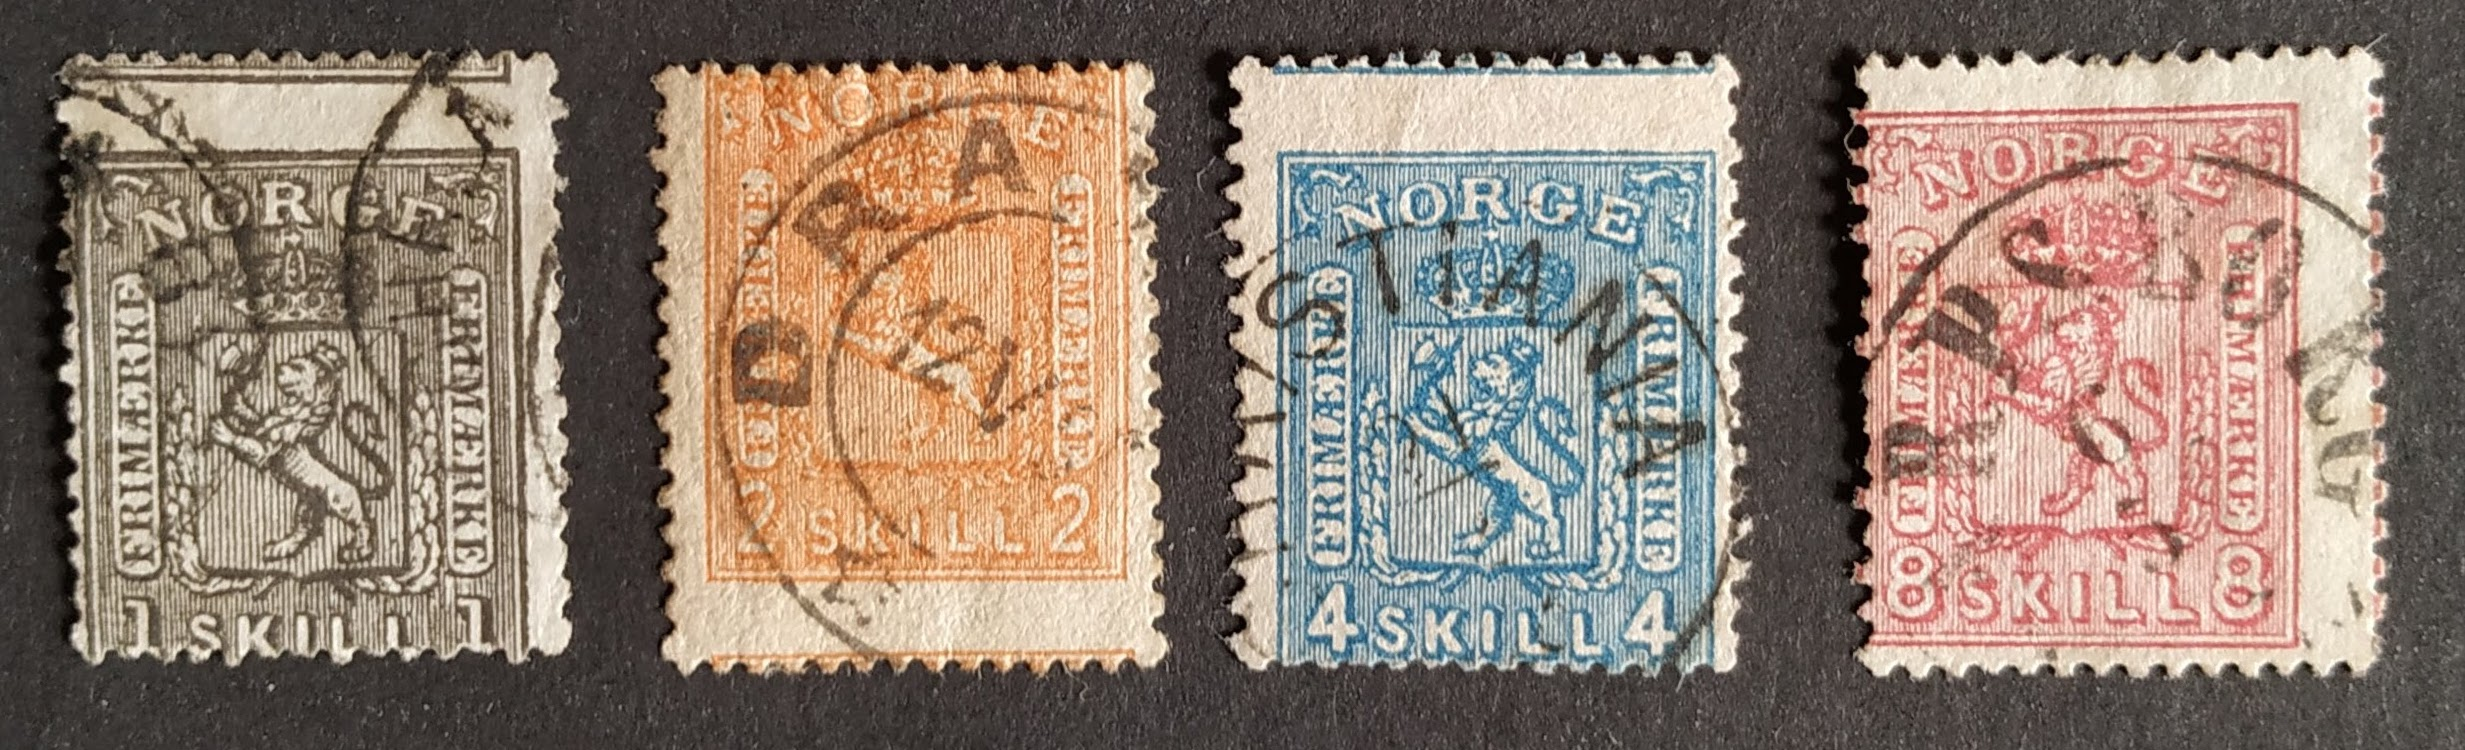 Read more about the article Perforation of stamps in the 1860s